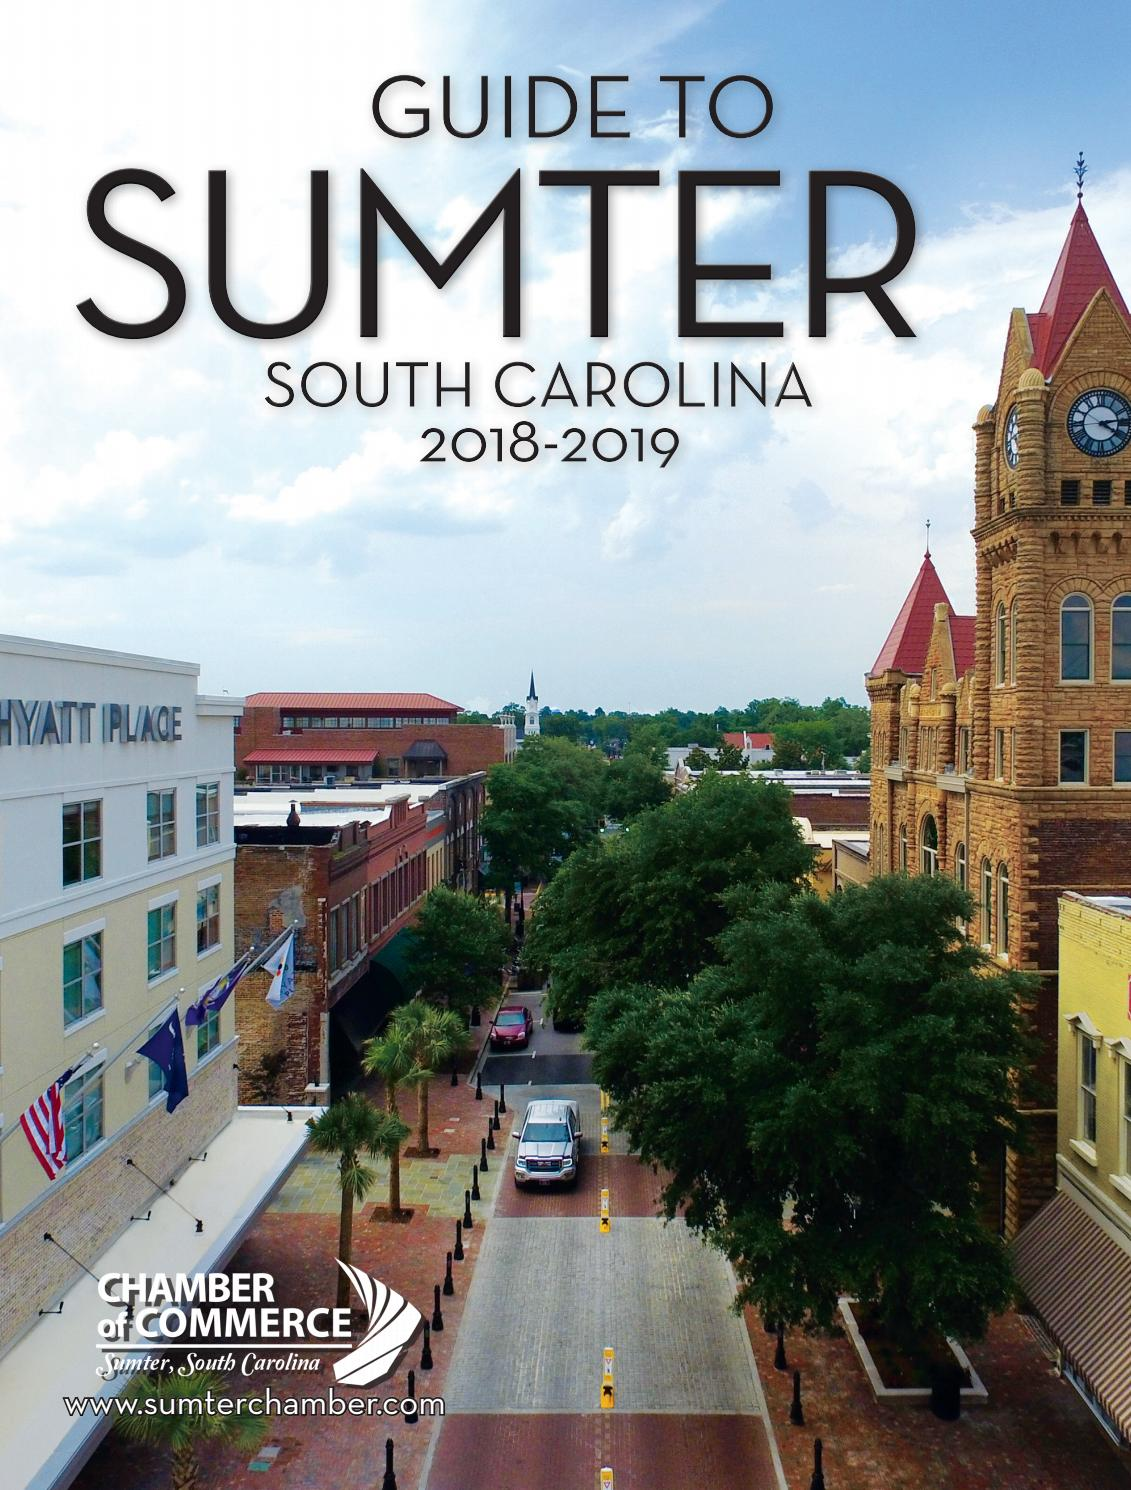 2018 2019 Sumter Chamber Guide By The Sumter Item Issuu